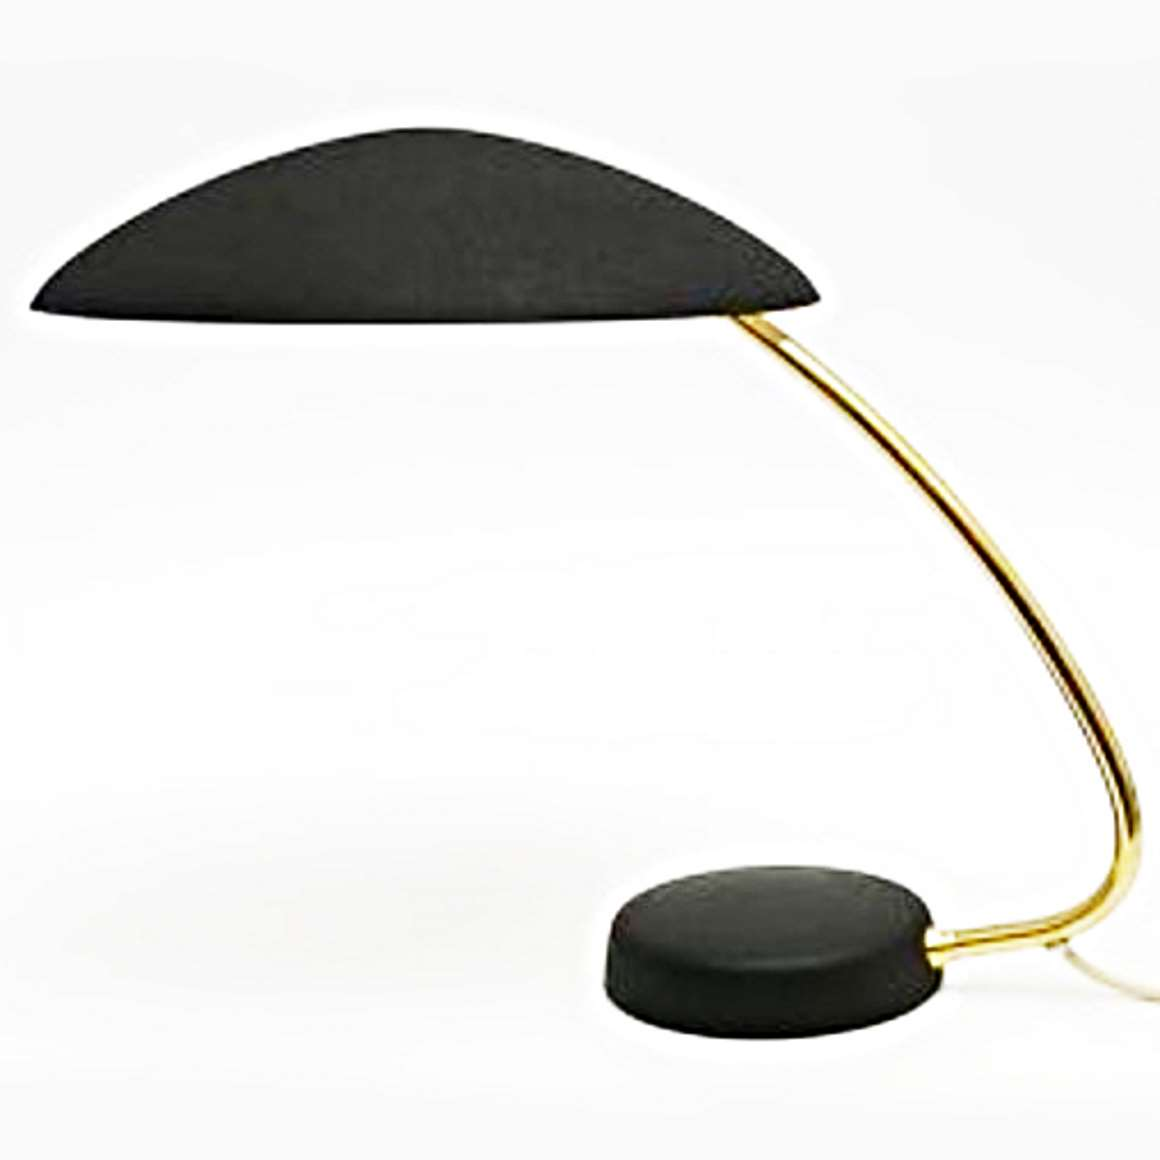 Cosack Desk Lamp - Black